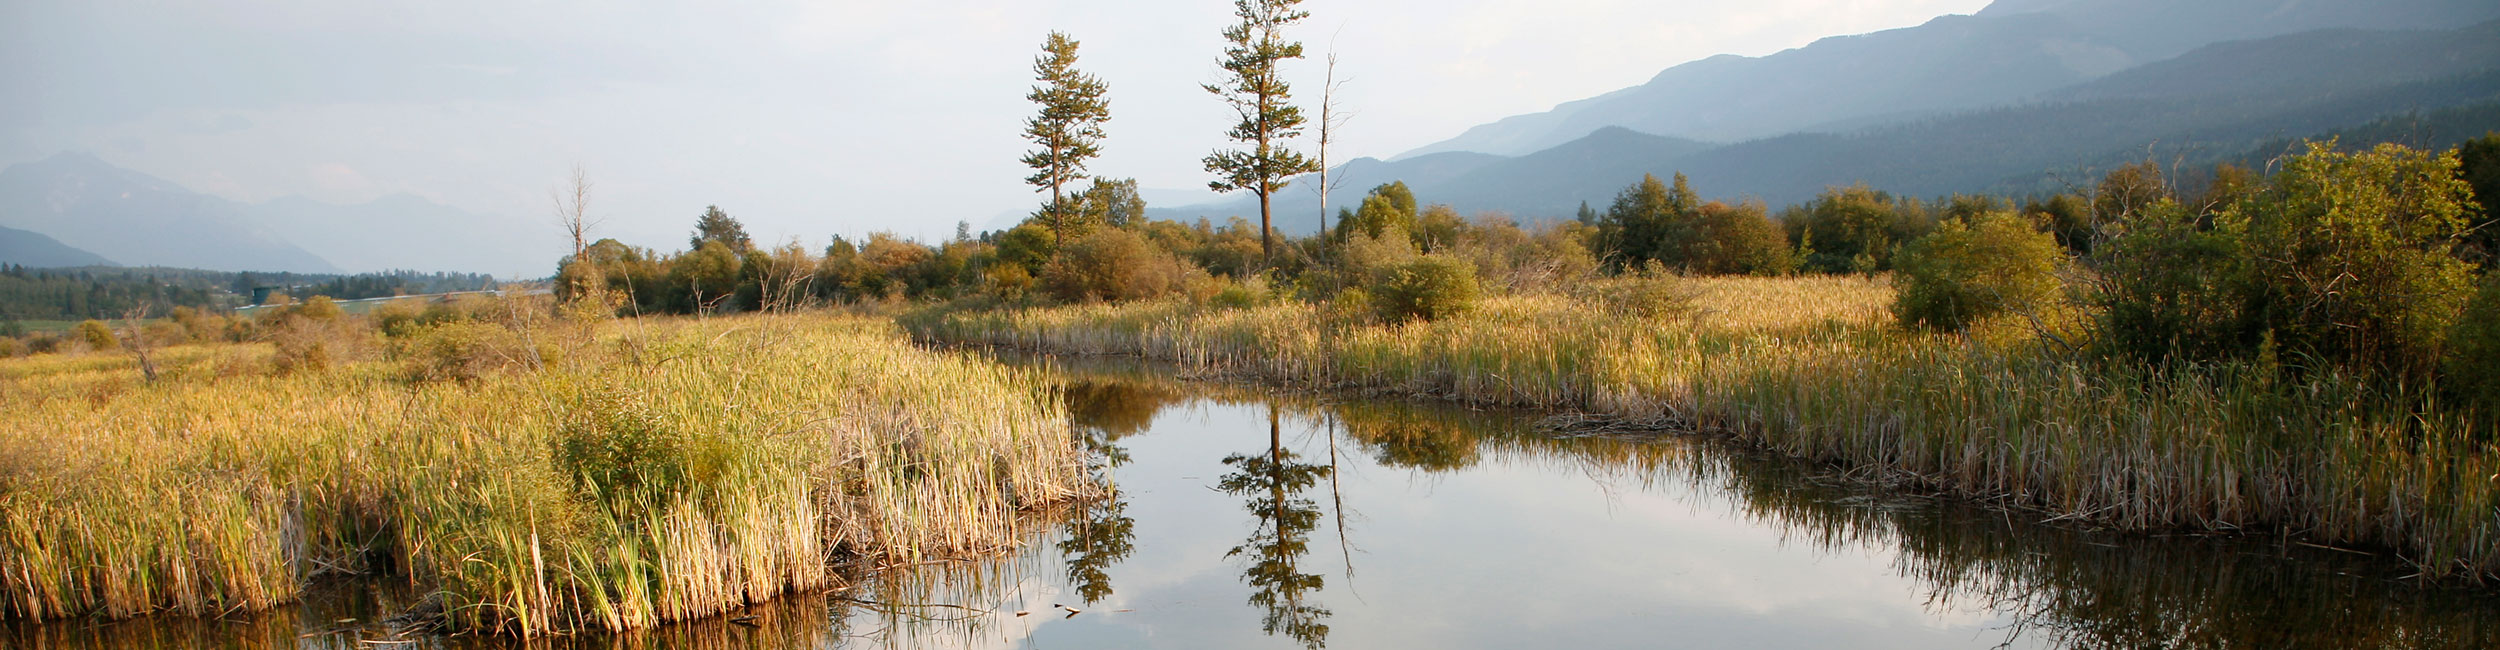 Wetlands near Golden, BC